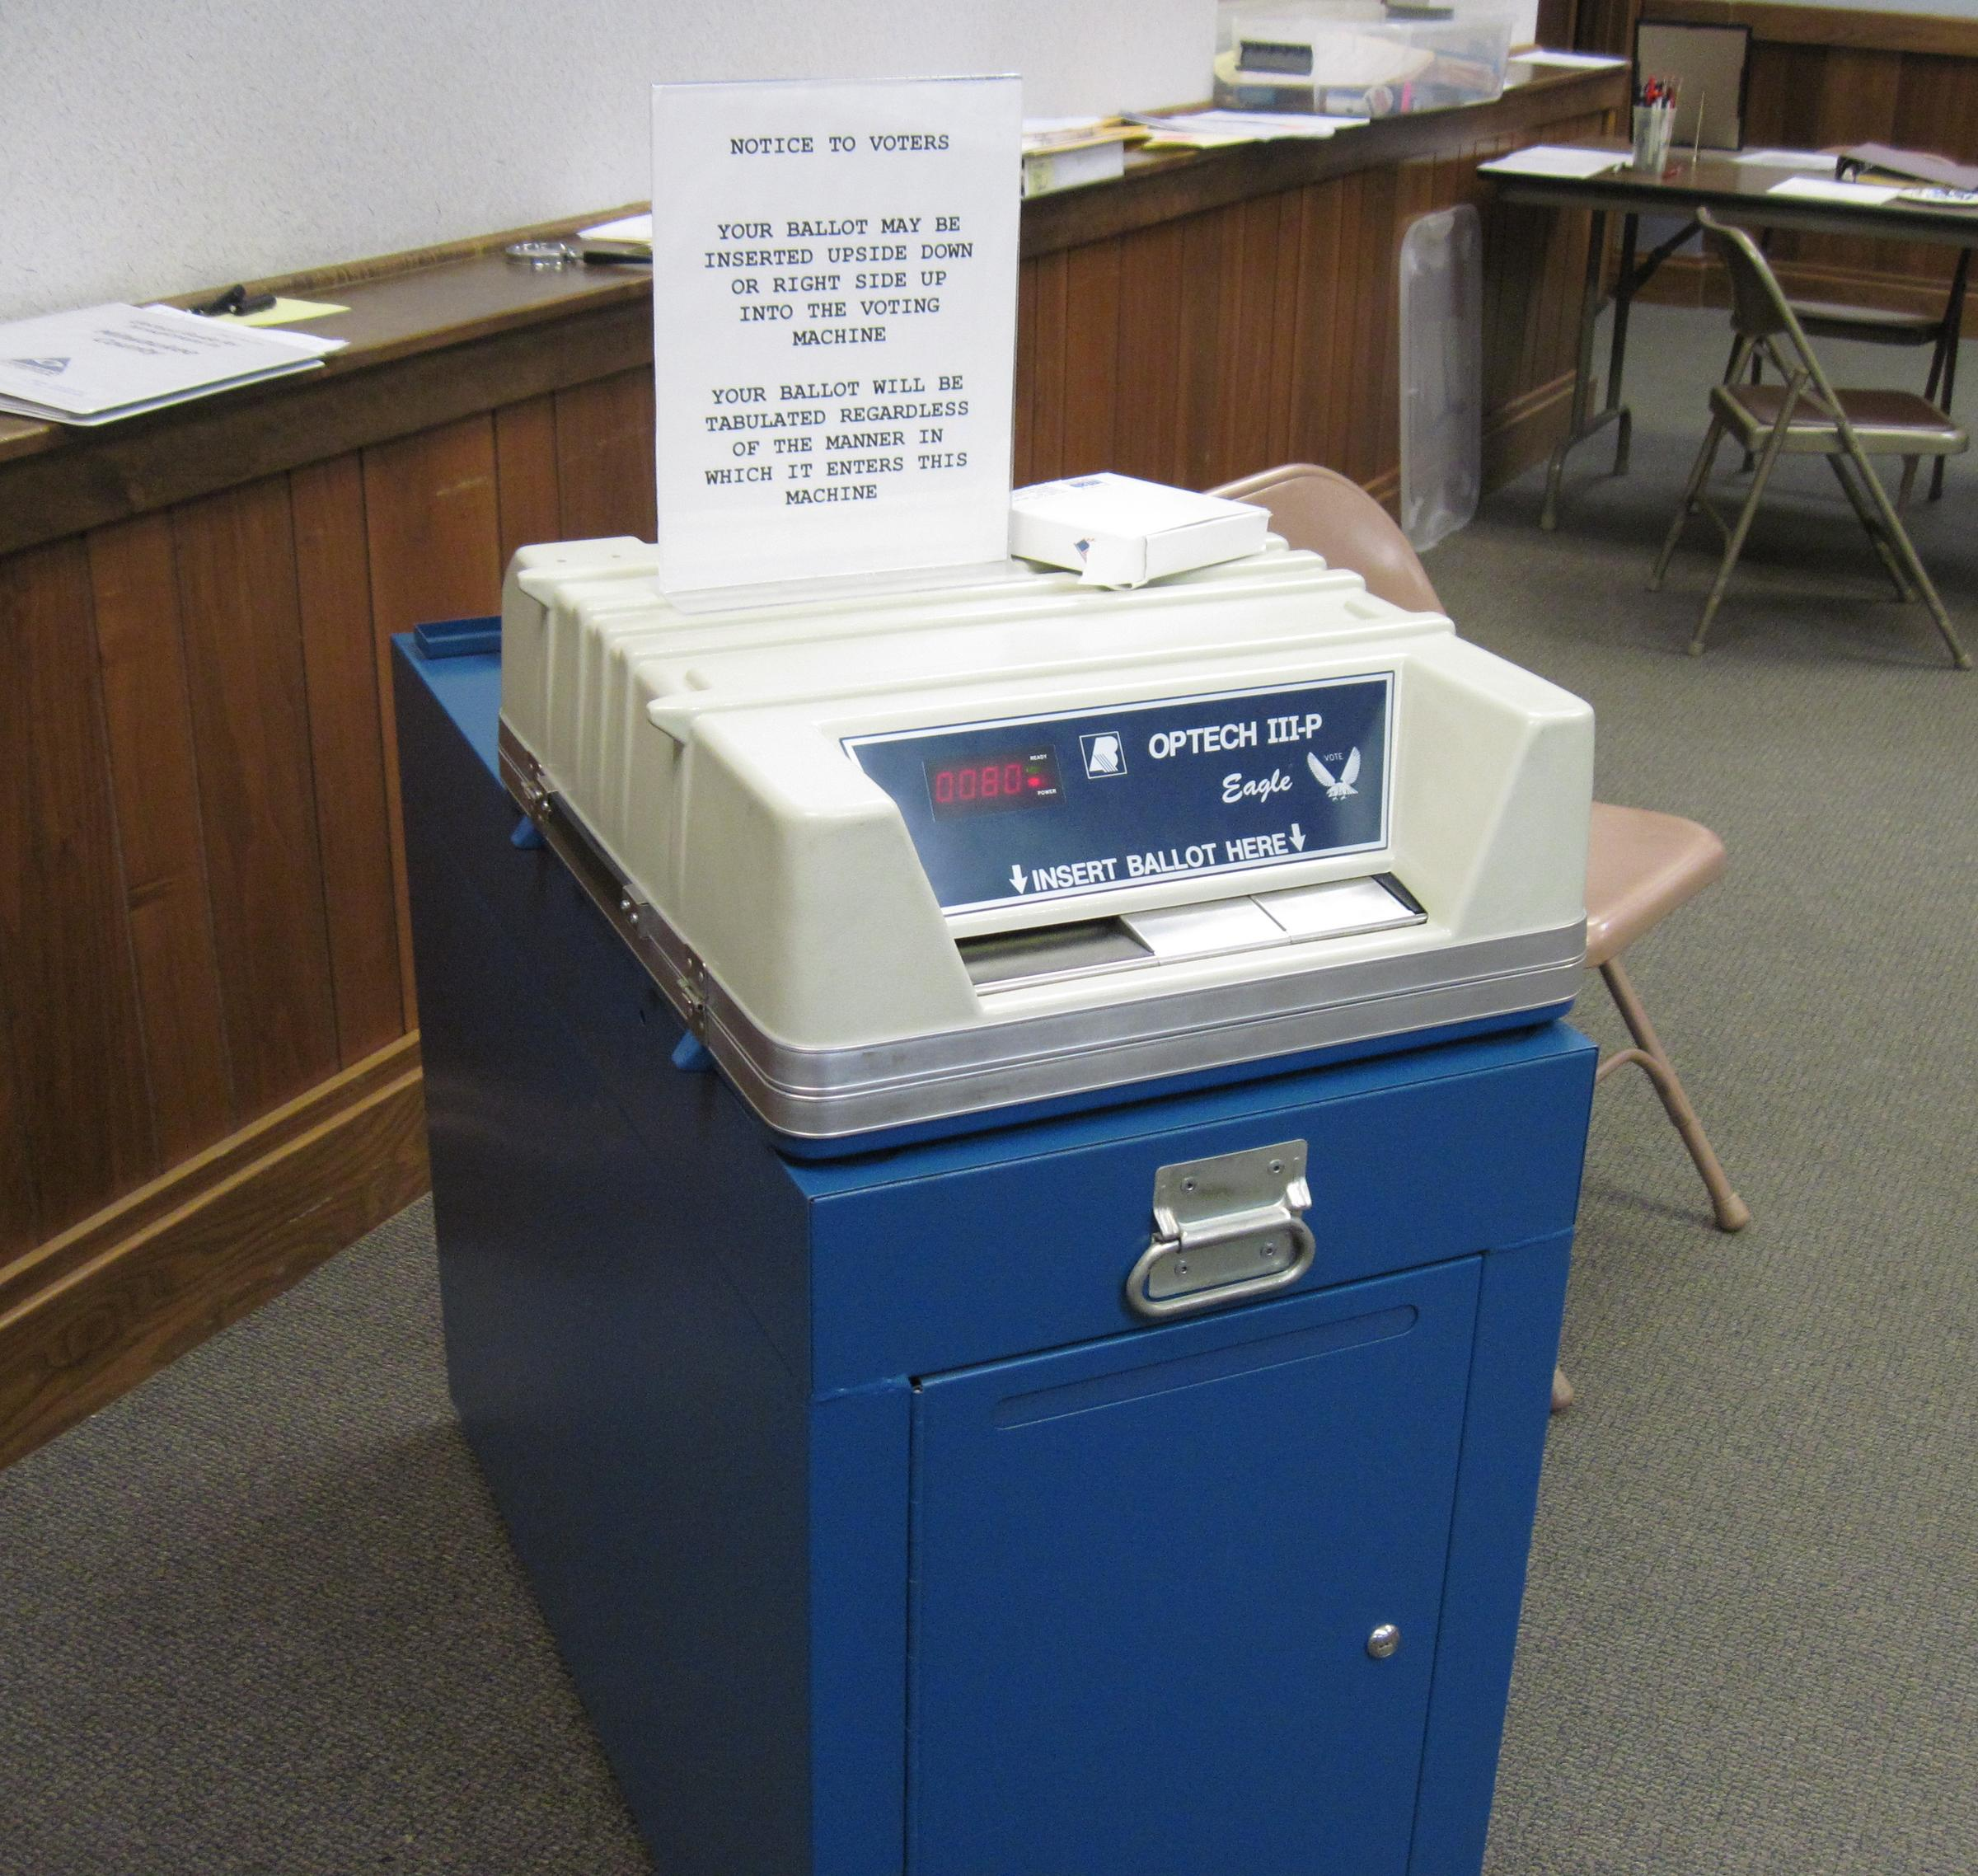 Deadlines approaching for absentee ballots by mail, in-person